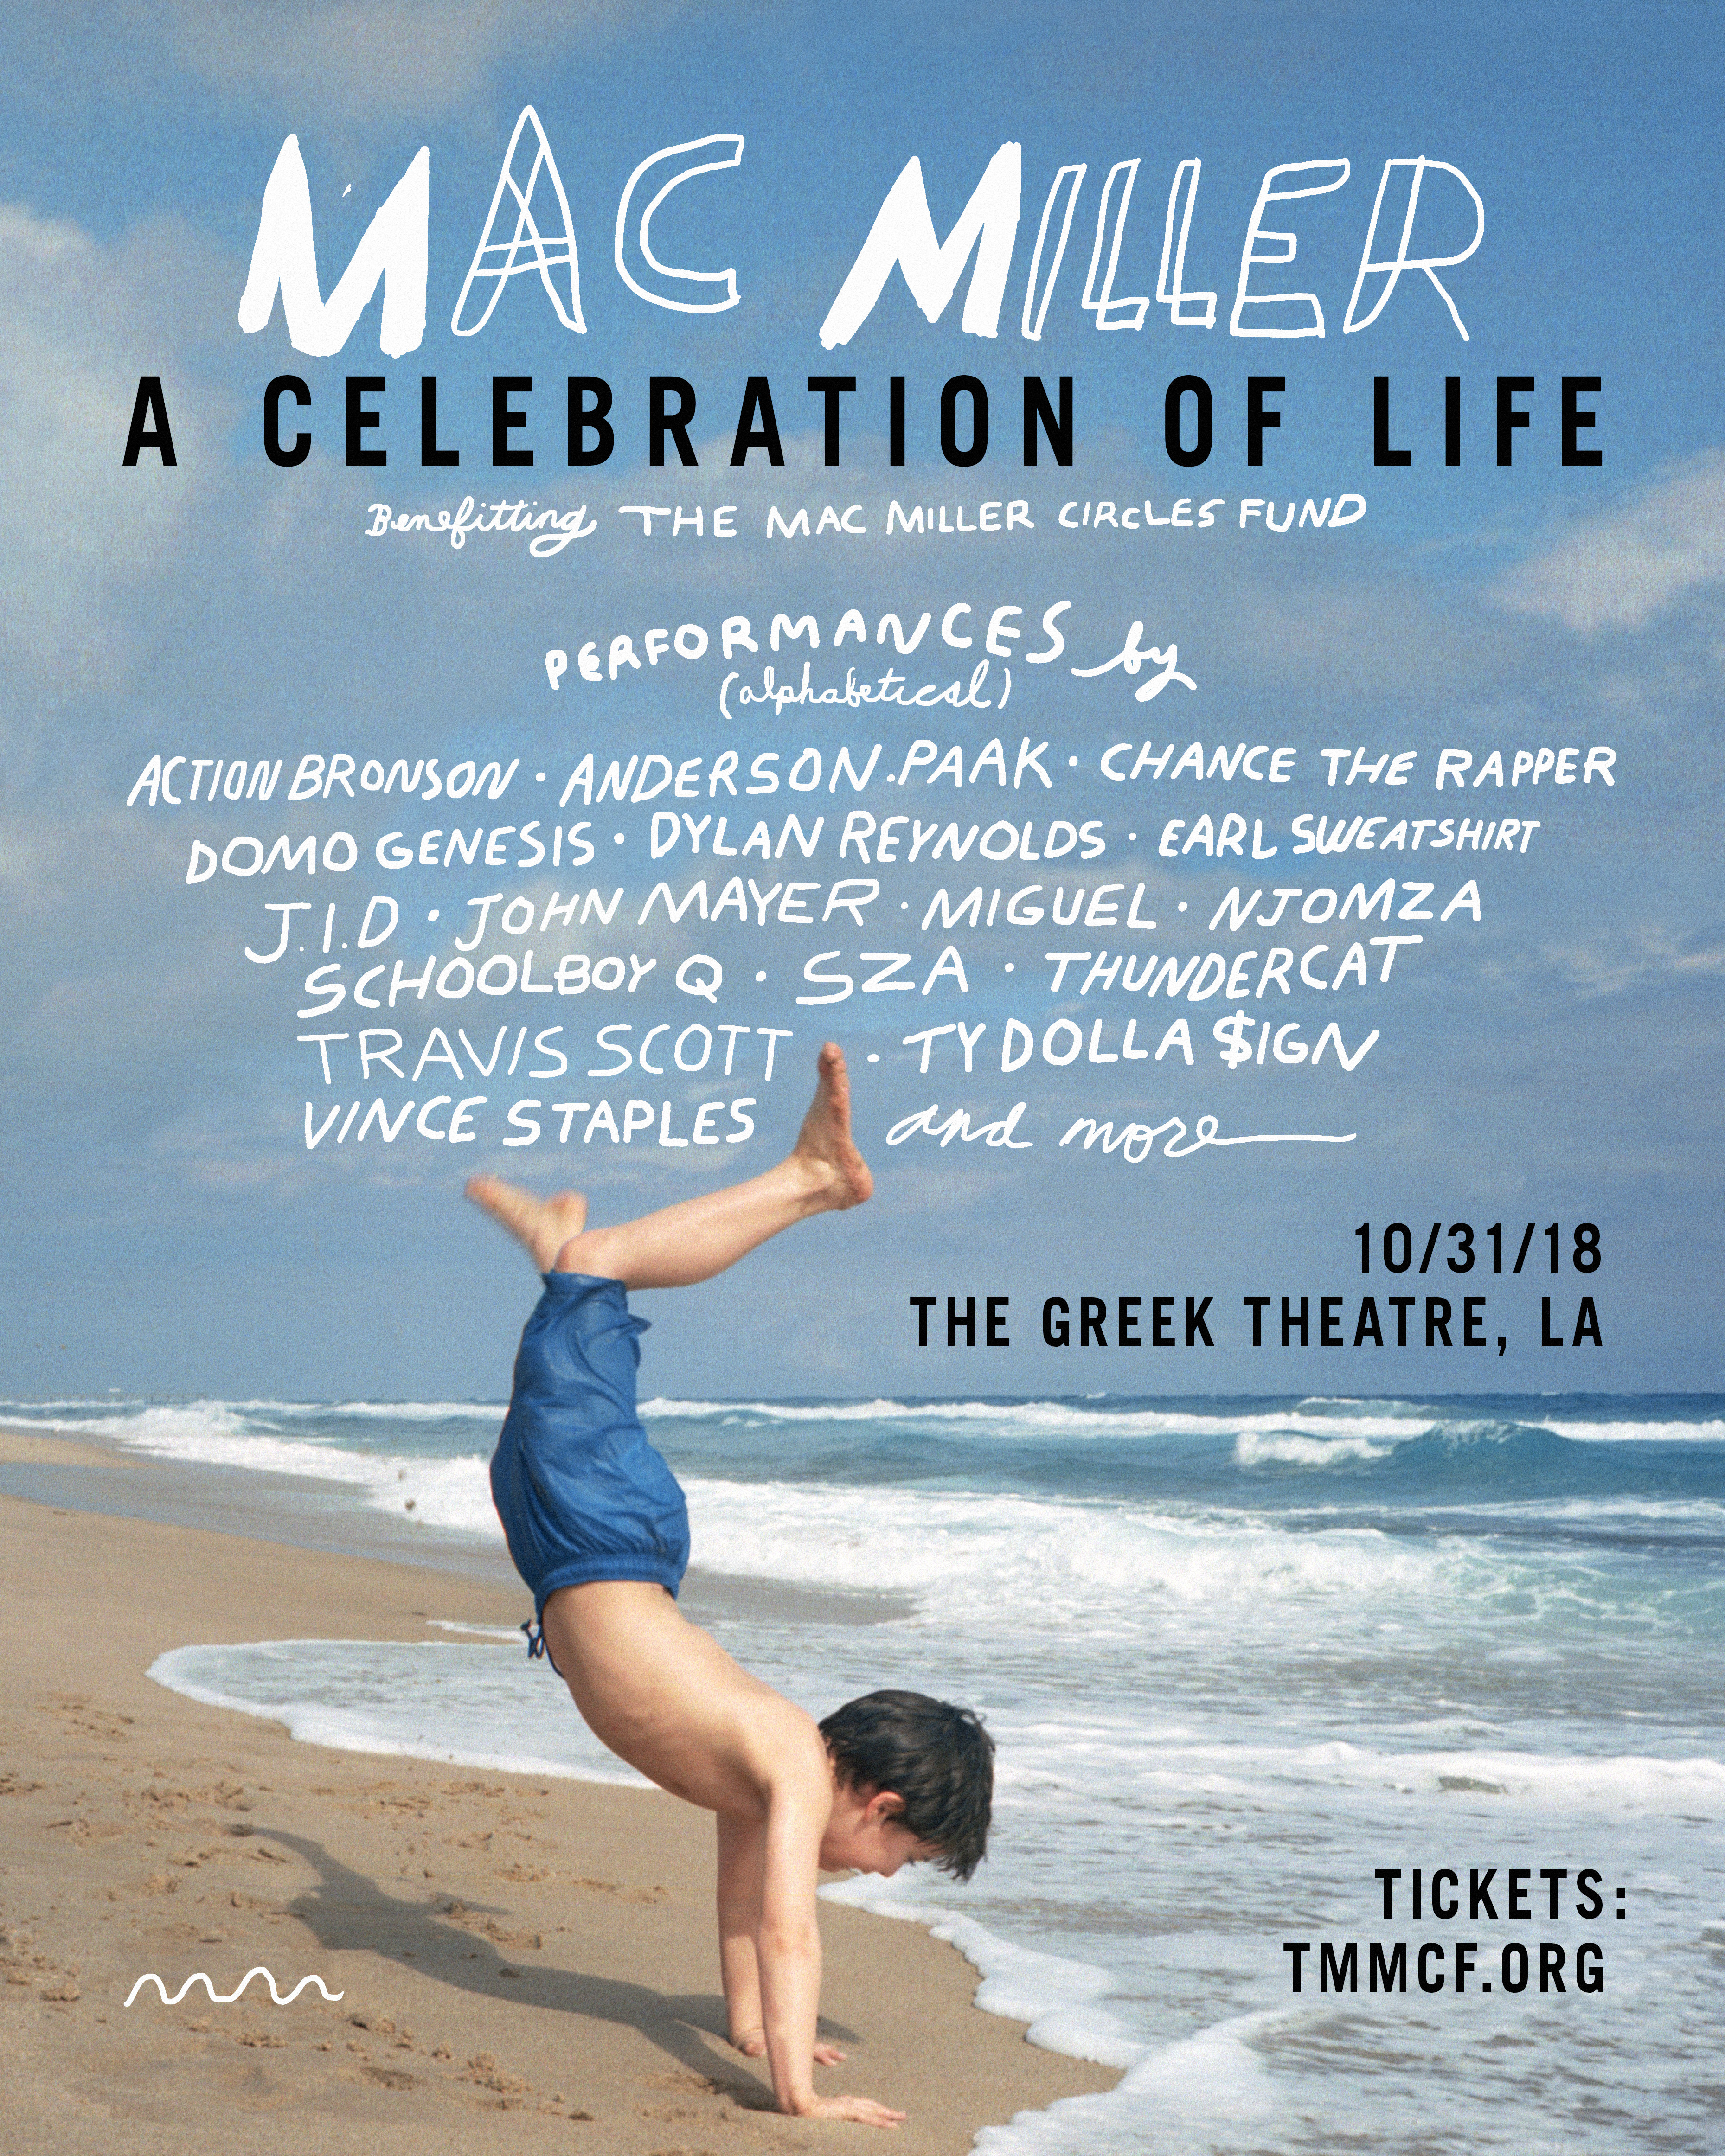 mac miller a celebration of life benefit concert lineup los angeles la greek theatre Travis Scott Chance the Rapper Action Bronson Earl Sweatshirt ScHoolboy Q Miguel Vince Staples John Mayer tickets buy